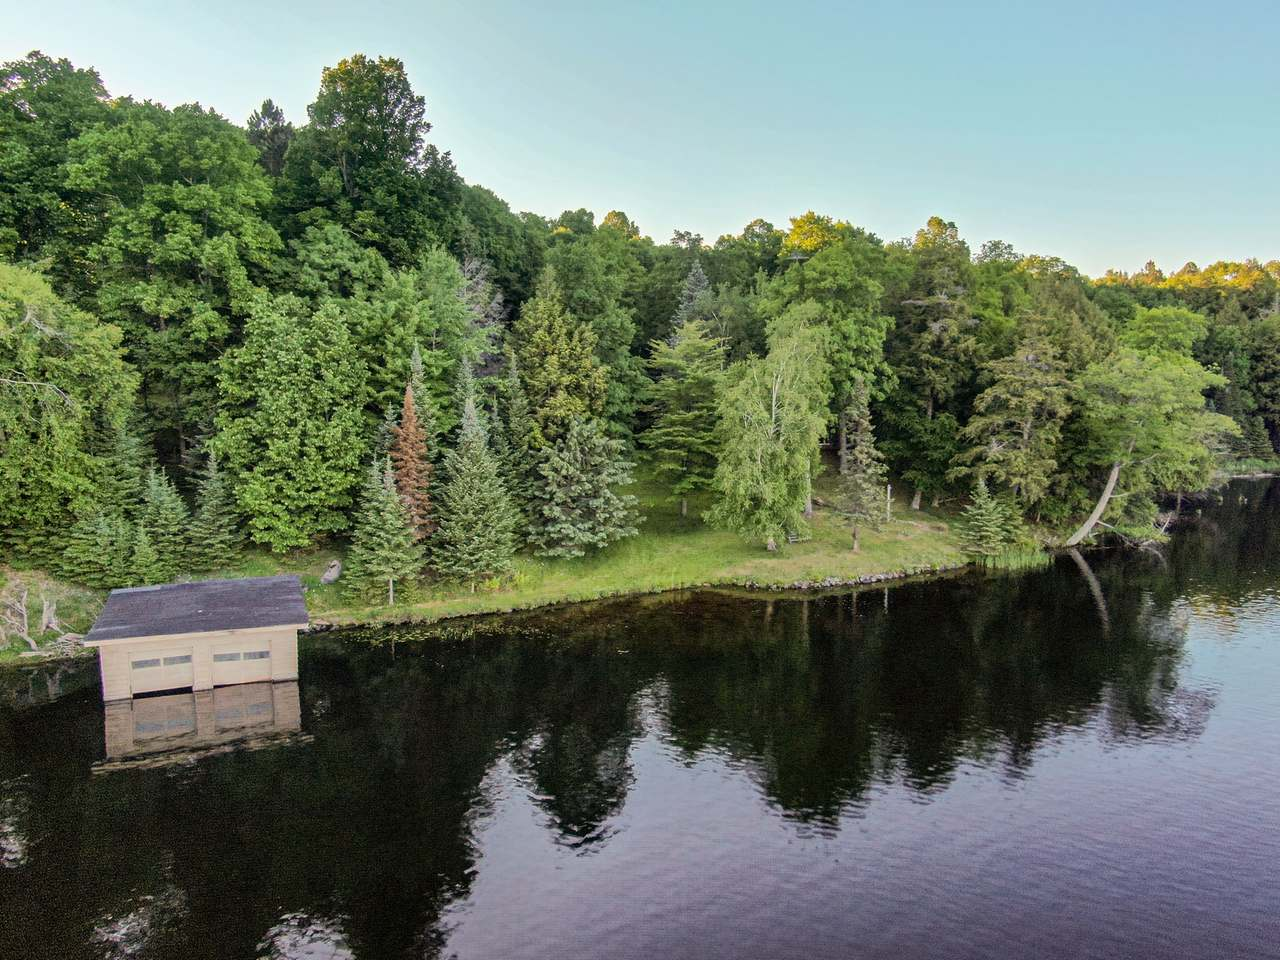 Looking for that special place to build your Northwoods retreat? You have found it on the Cisco Chain of Lakes! The parcel sits on the jewel of the Cisco Chain, Thousand Island Lake. It offers 650' of frontage and 4 acres of land. There is also a wet boathouse on the property. The property faces south for all day sun. The beach is sandy and offers great swimming. The fishing is outstanding too! The parcel is located 20 miles northwest of Land O' Lakes, Wisconsin. It is a perfect spot to build that Northwoods dream home.